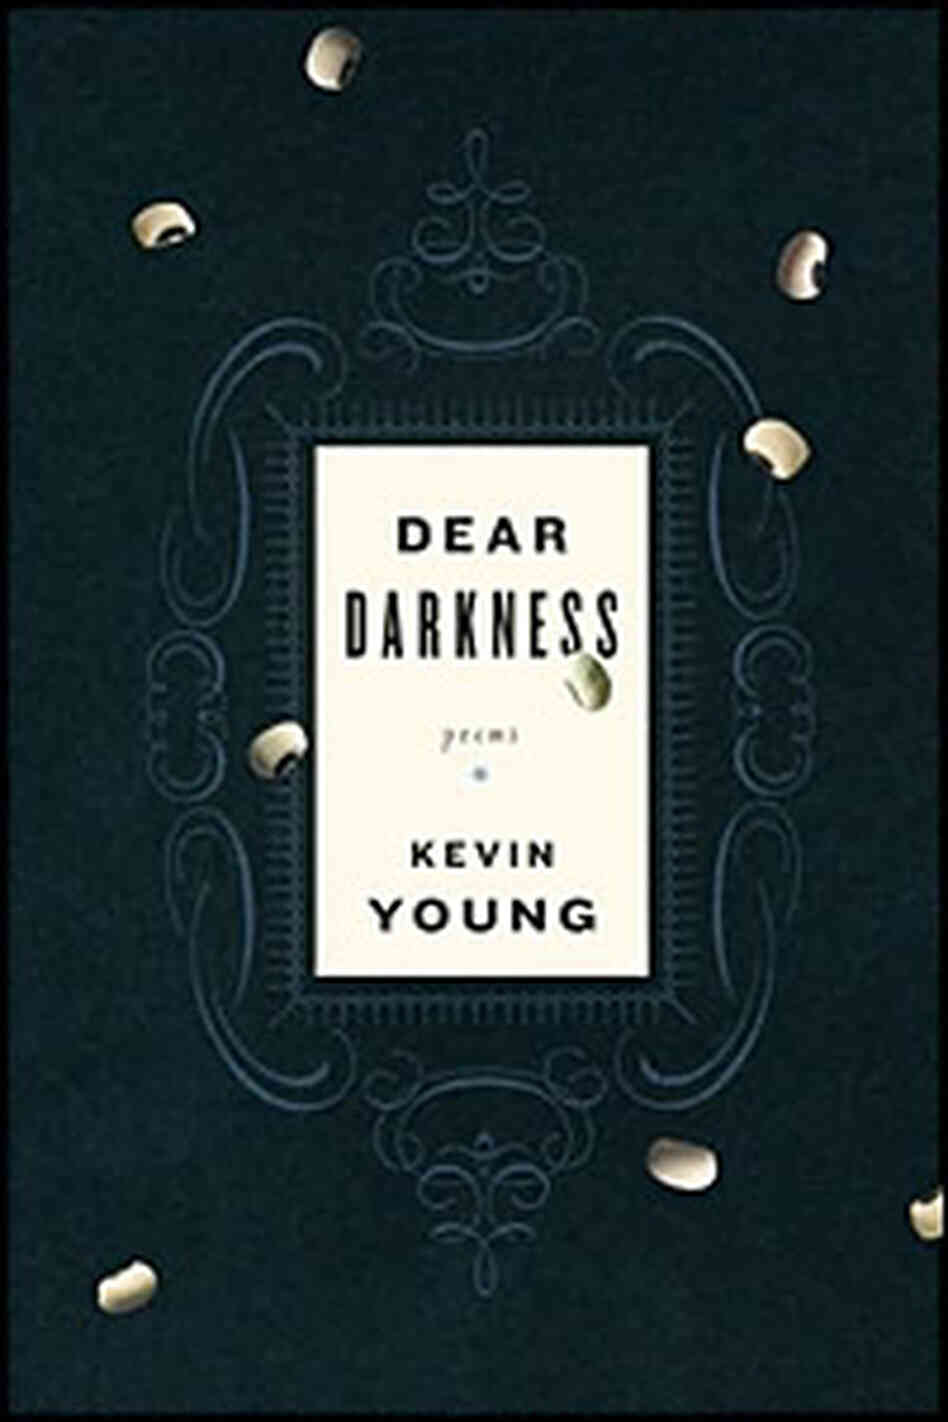 Kevin Young's 'Dear Darkne